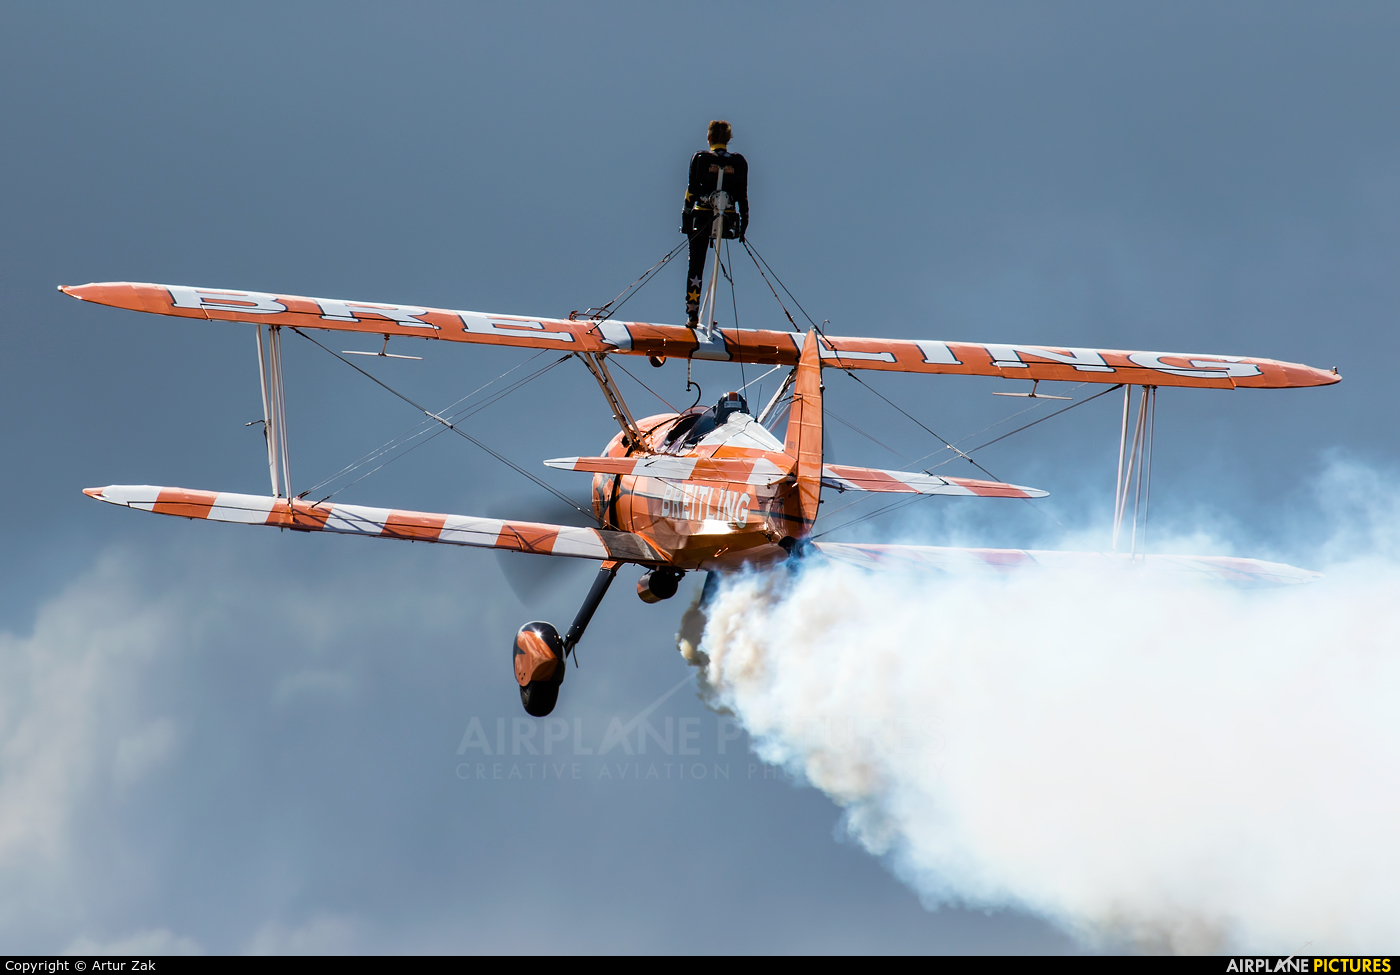 Breitling Wingwalkers N5057V aircraft at Abbeyshrule